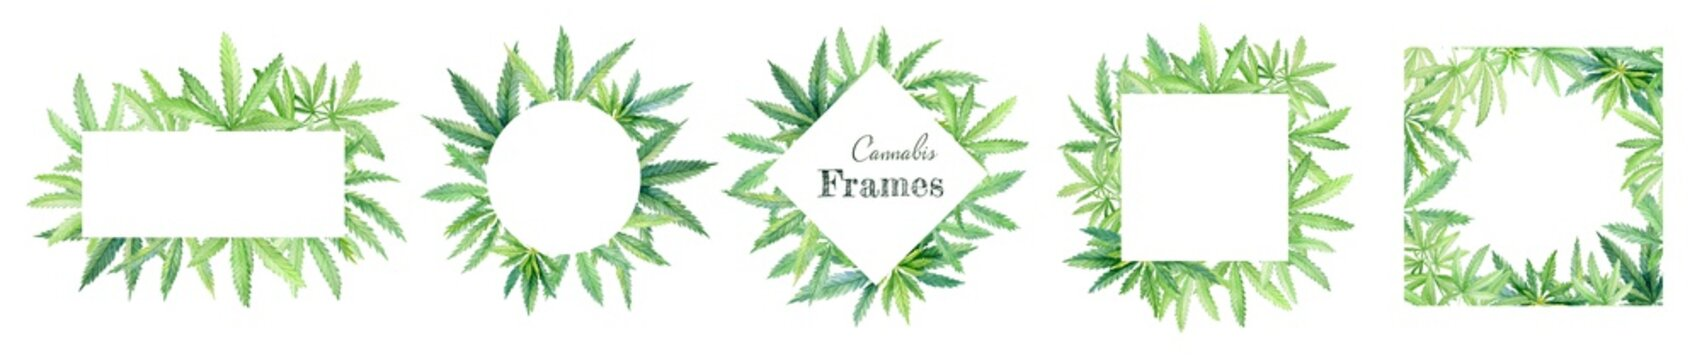 Watercolor green cannabis leaves frames. Hand drawn medical marijuana illustration isolated on white background. Round and square borders, templates for invitations and logo